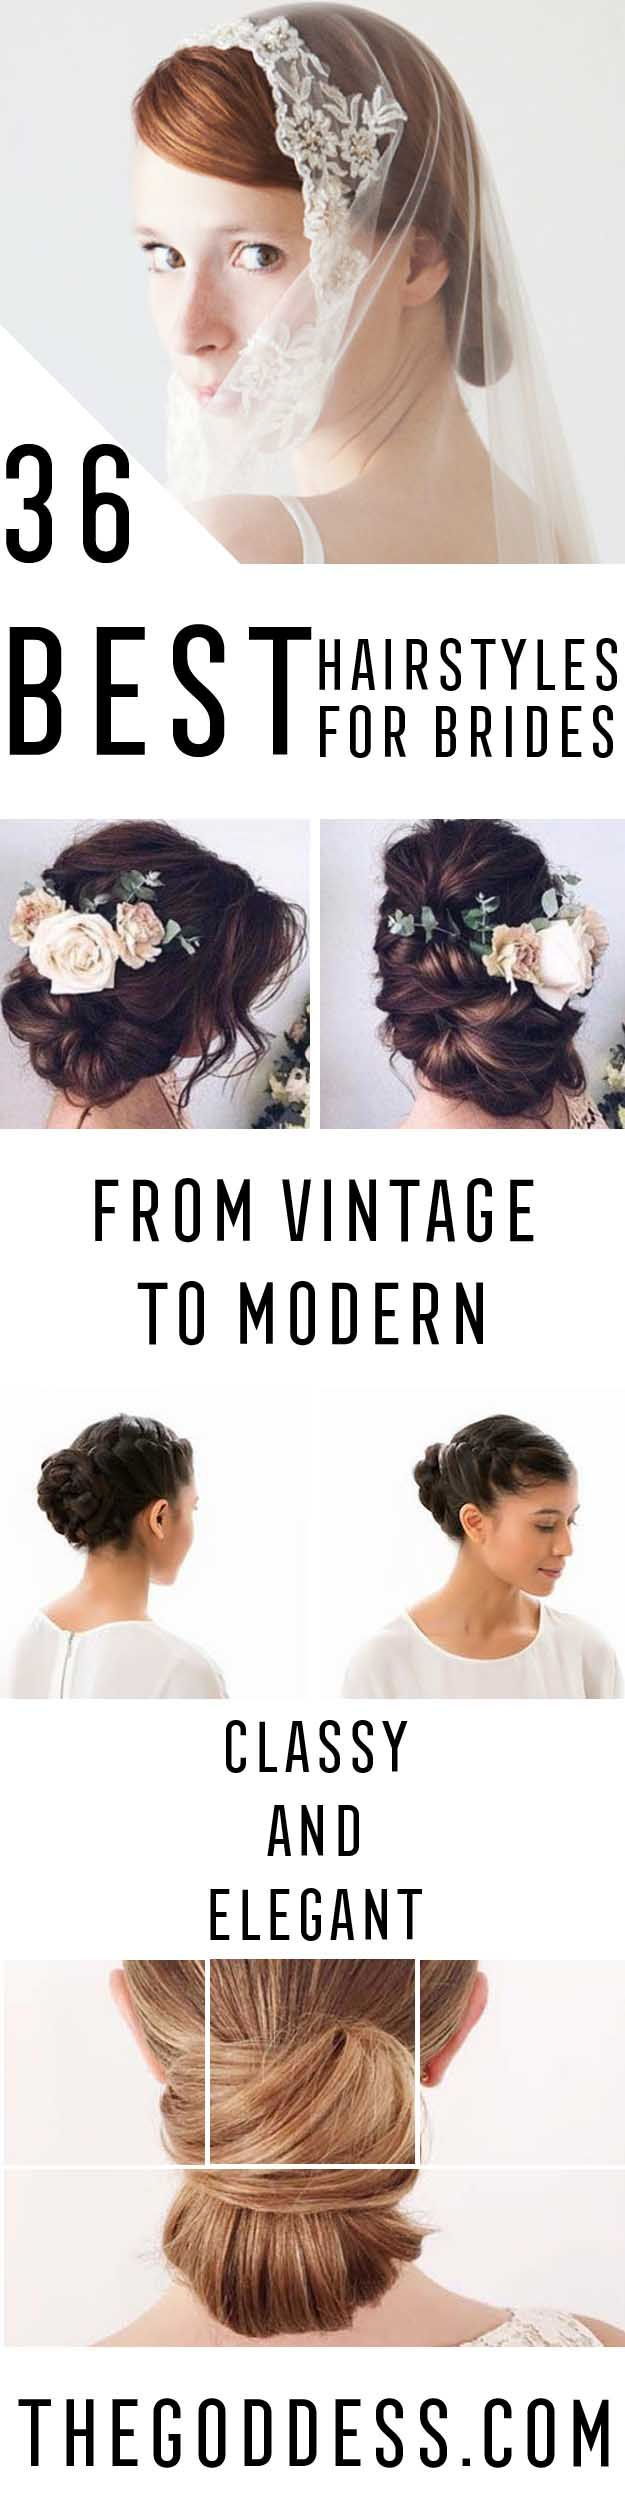 Best Hairstyles for Brides = - Amazing Hair Styles and Looks for Half Up Medium Styles, Updo With Long Hair, Short Curls, Vintage Looks with Veil, Headpieces, or With Tiara - Wedding Looks for Girls With Round Faces - Awesome Simple Bridal Style With Headband or Elegant Braided Up Dos - thegoddess.com/hairstyles-for-brides